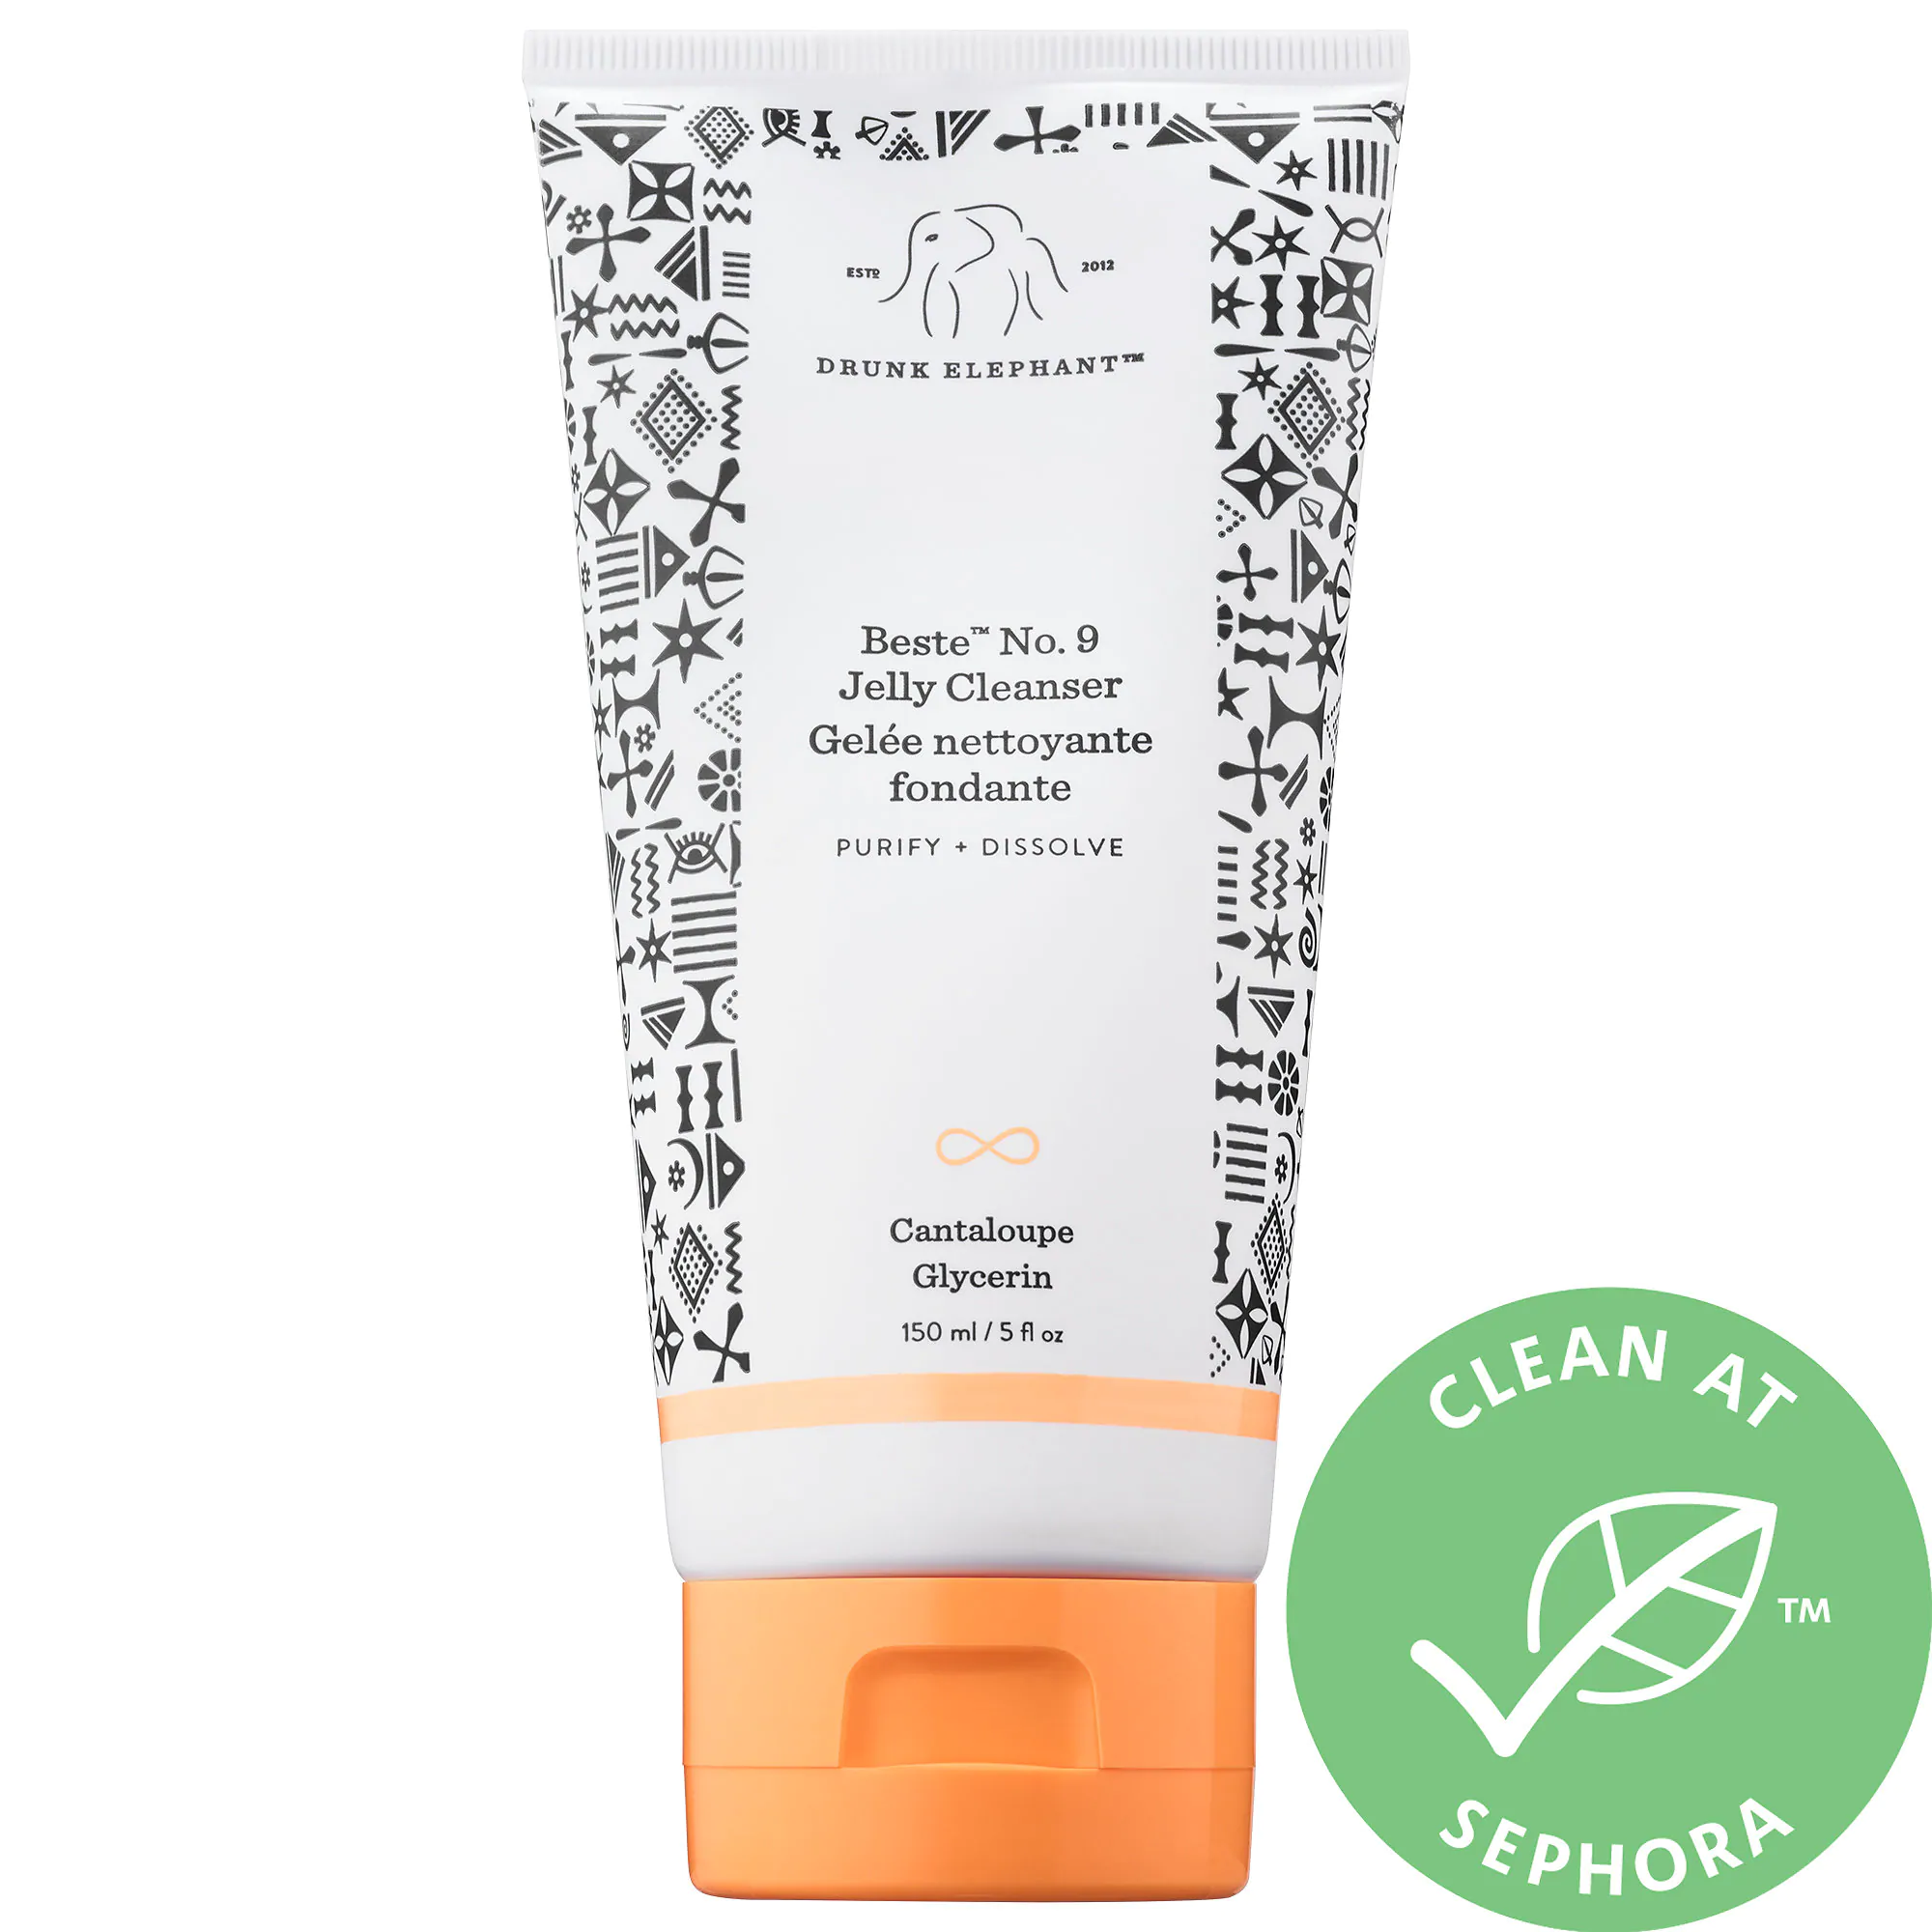 Drunk Elephant Beste™ No. 9 Jelly Cleanser